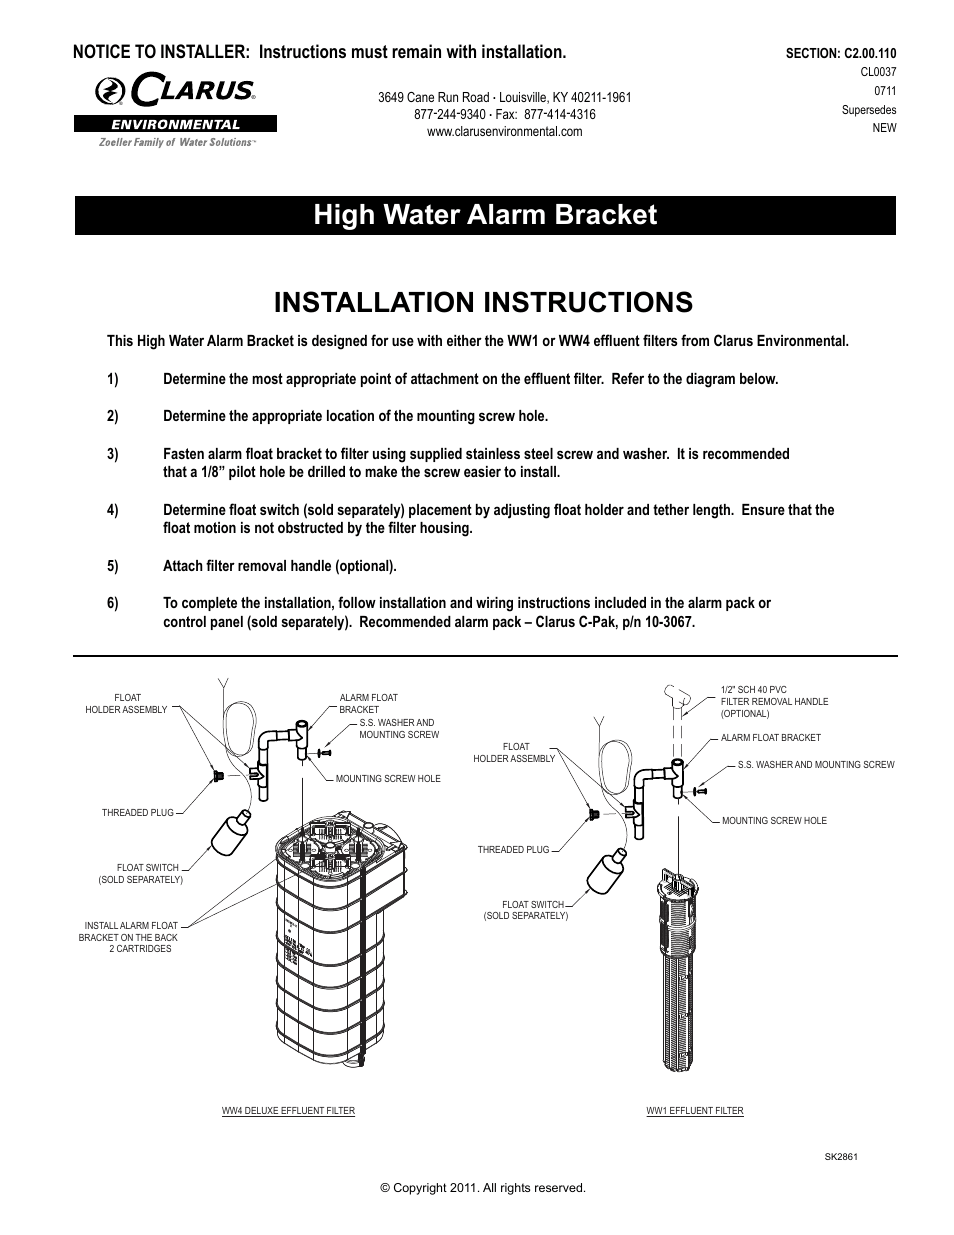 hight resolution of clarus environmental ww1 high water alarm bracket user manual 2 pages also for ww4 high water alarm bracket